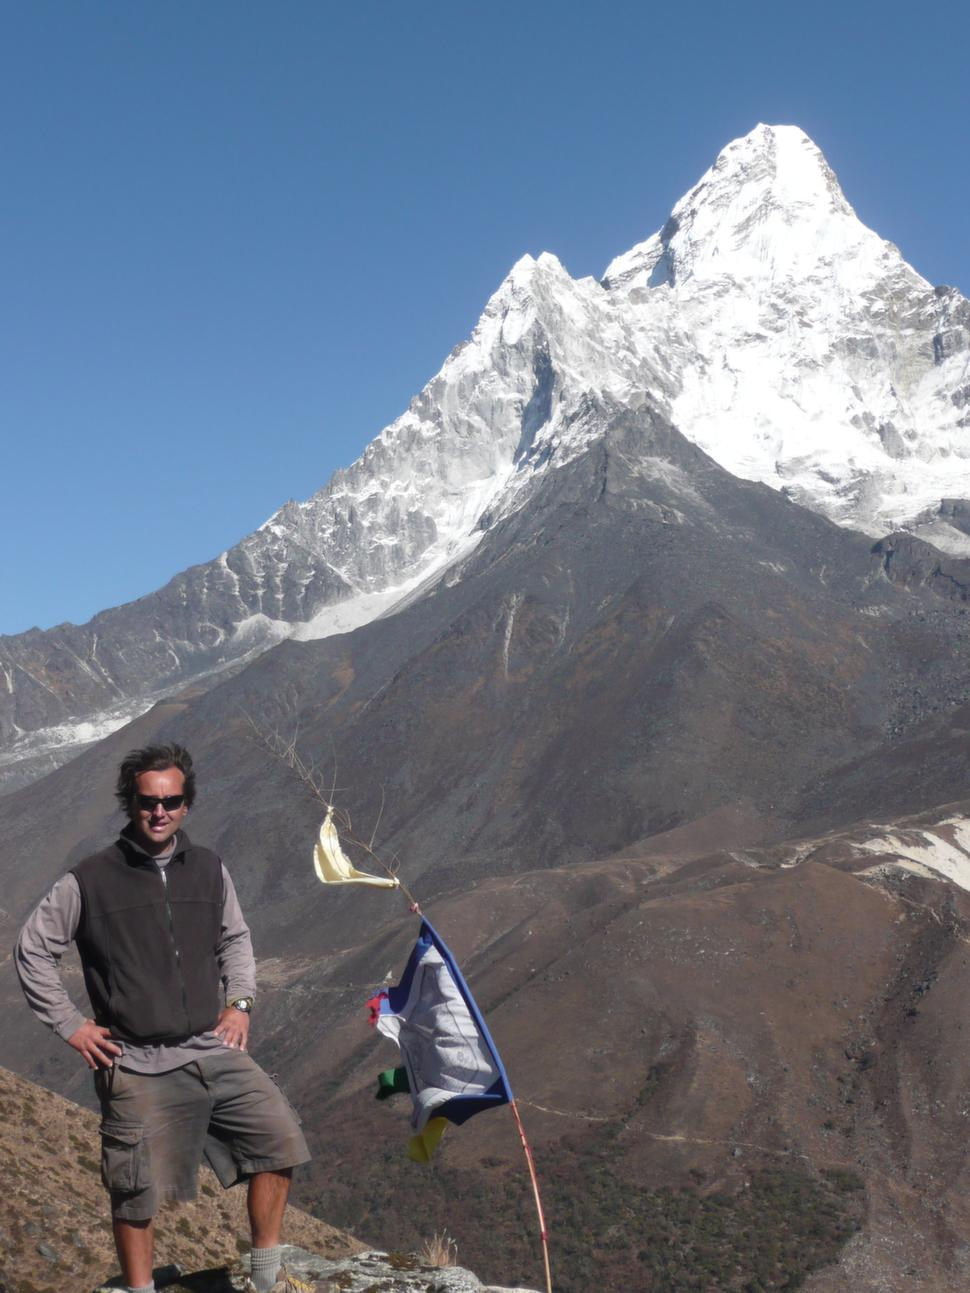 Everest Base Camp: The Direct Route | Skychasers